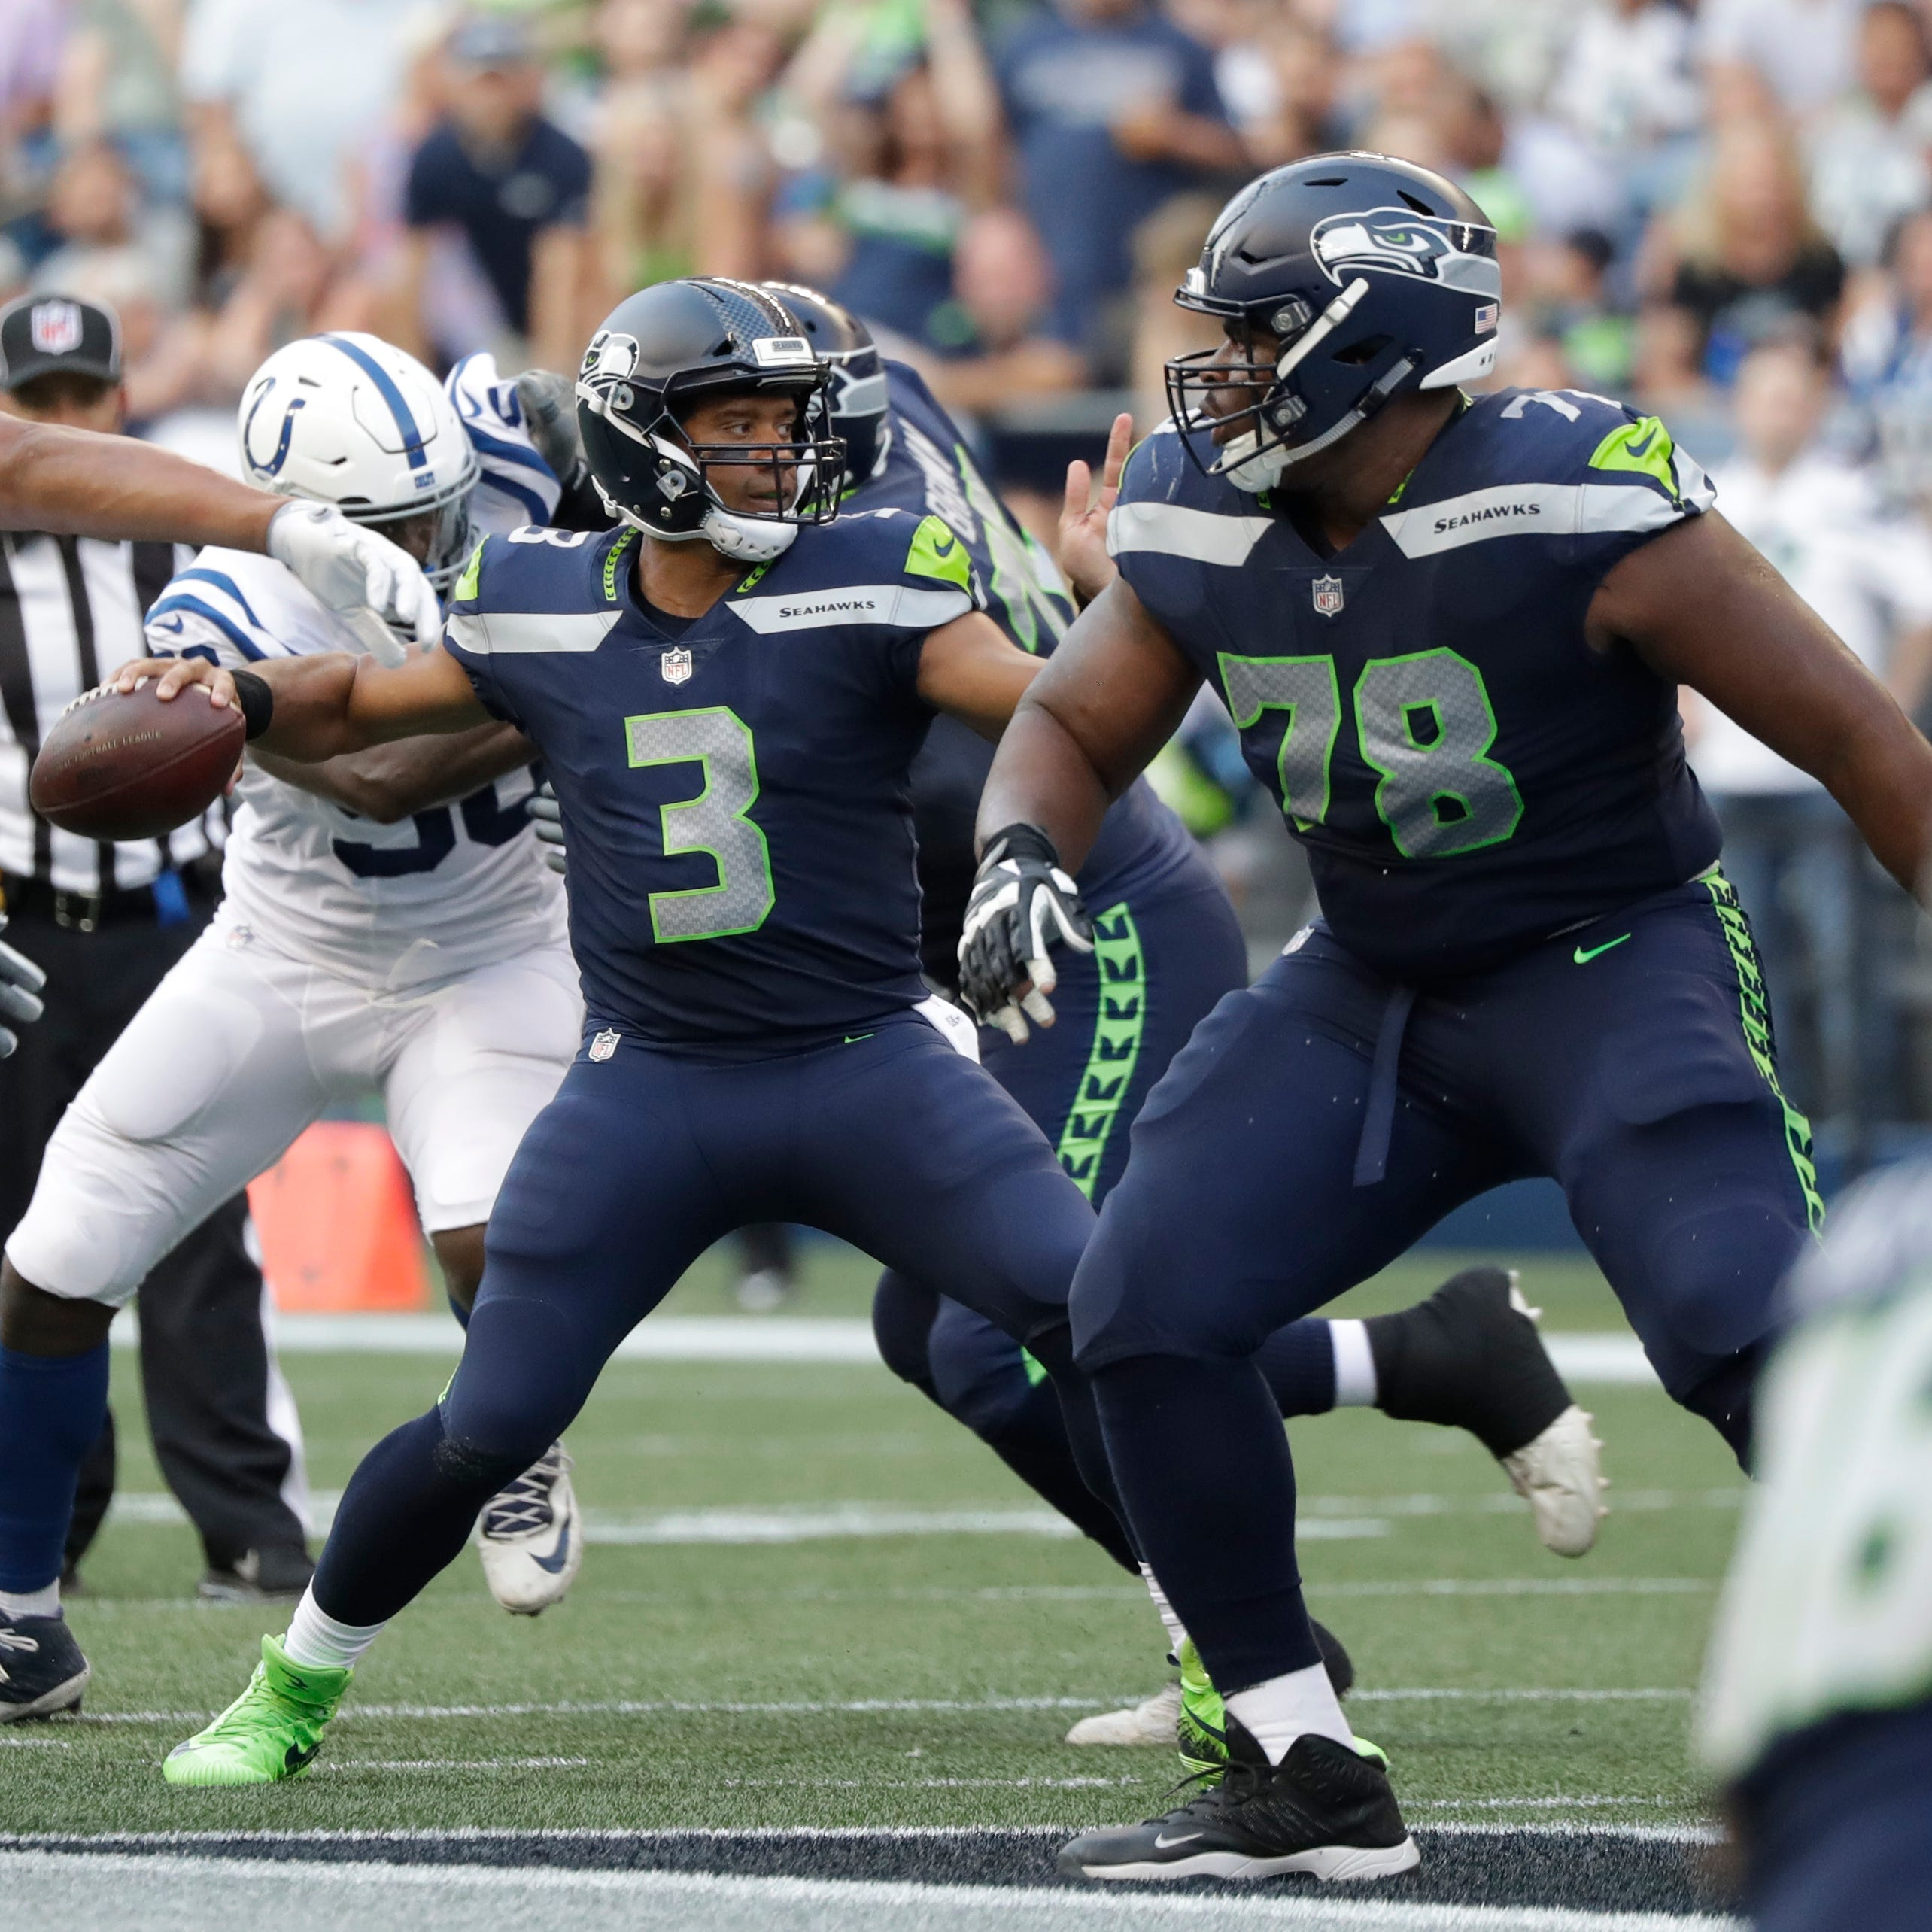 Shaquem Griffin, Russell Wilson impress as Seahawks open preseason